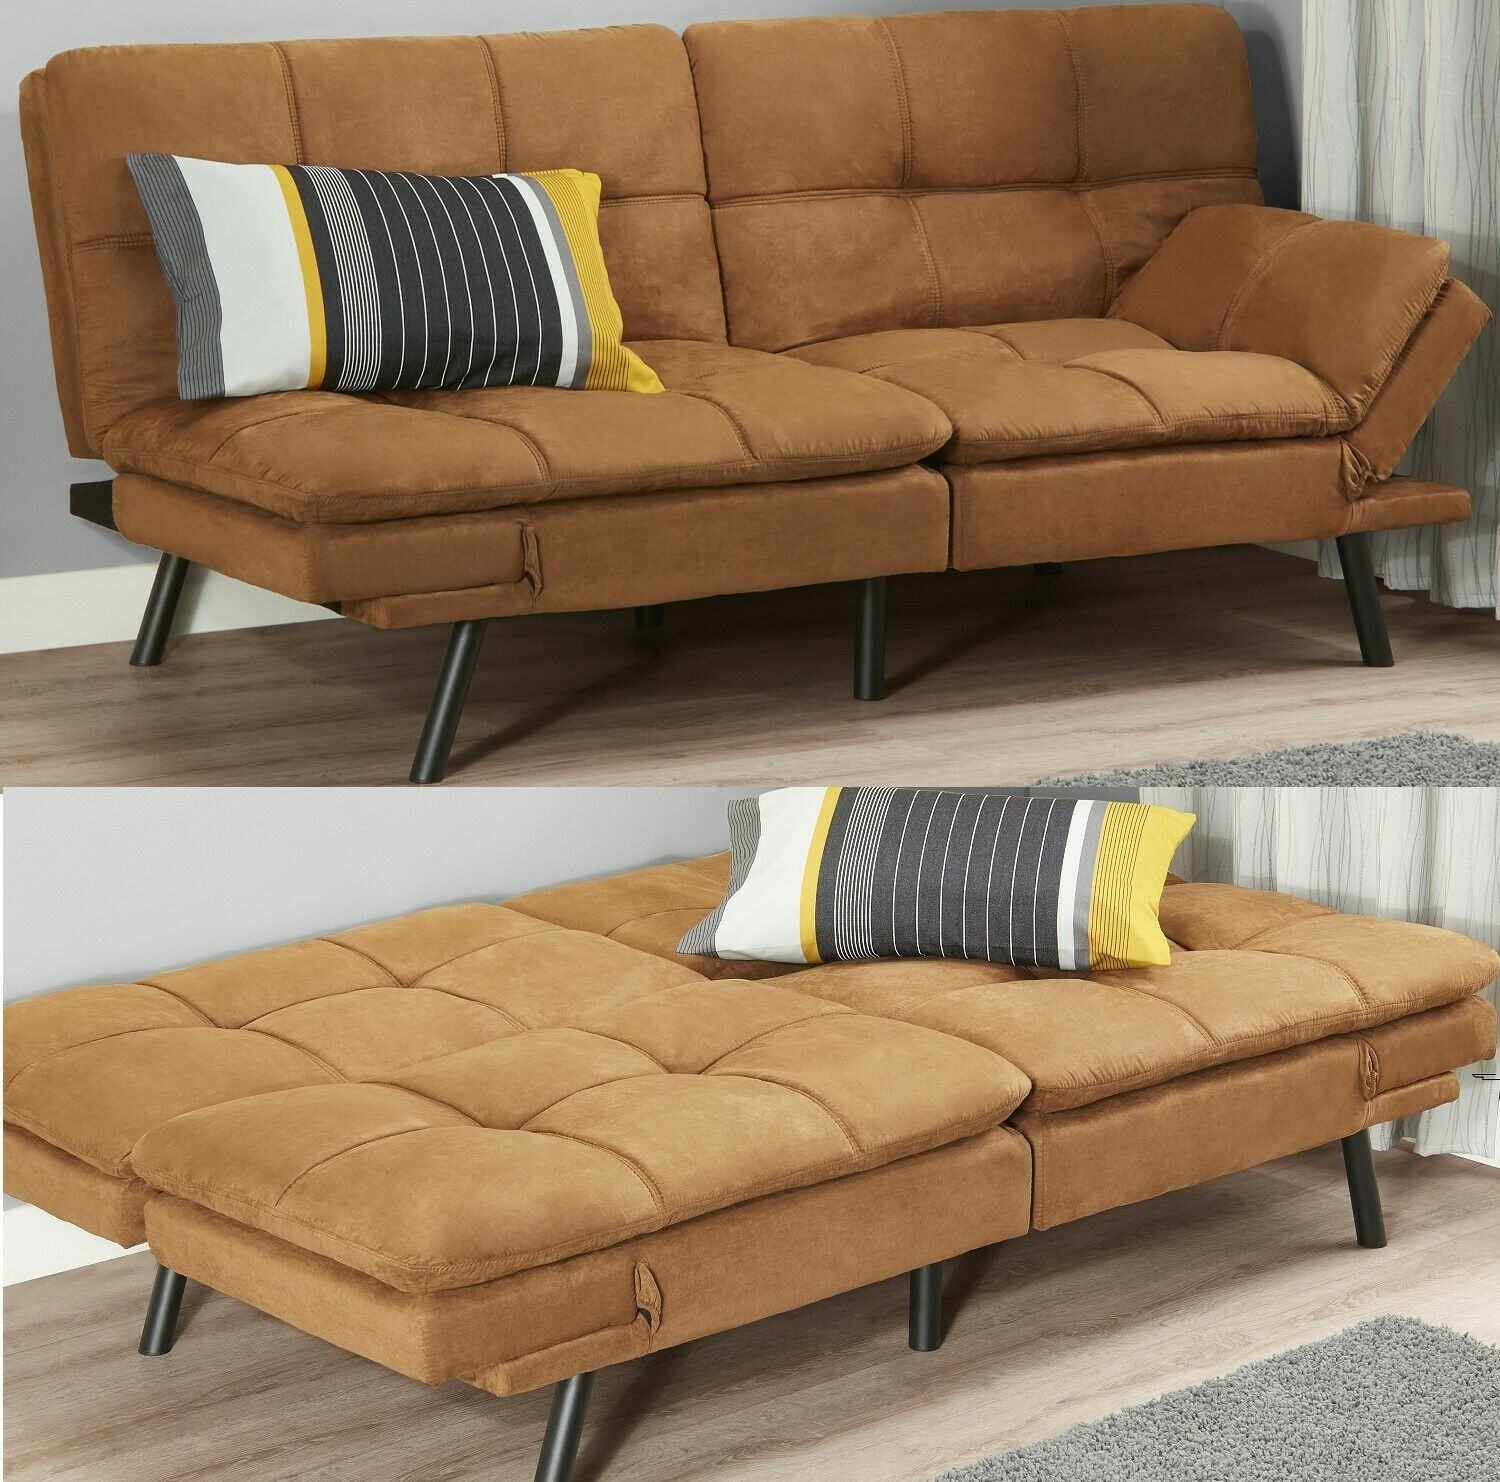 Sleeper Sofa Bed Suede Convertible Couch Modern Futon Living Room Loveseat Sofa Living Modern Couches Living Room Classic Sofa Living Room Futon Living Room